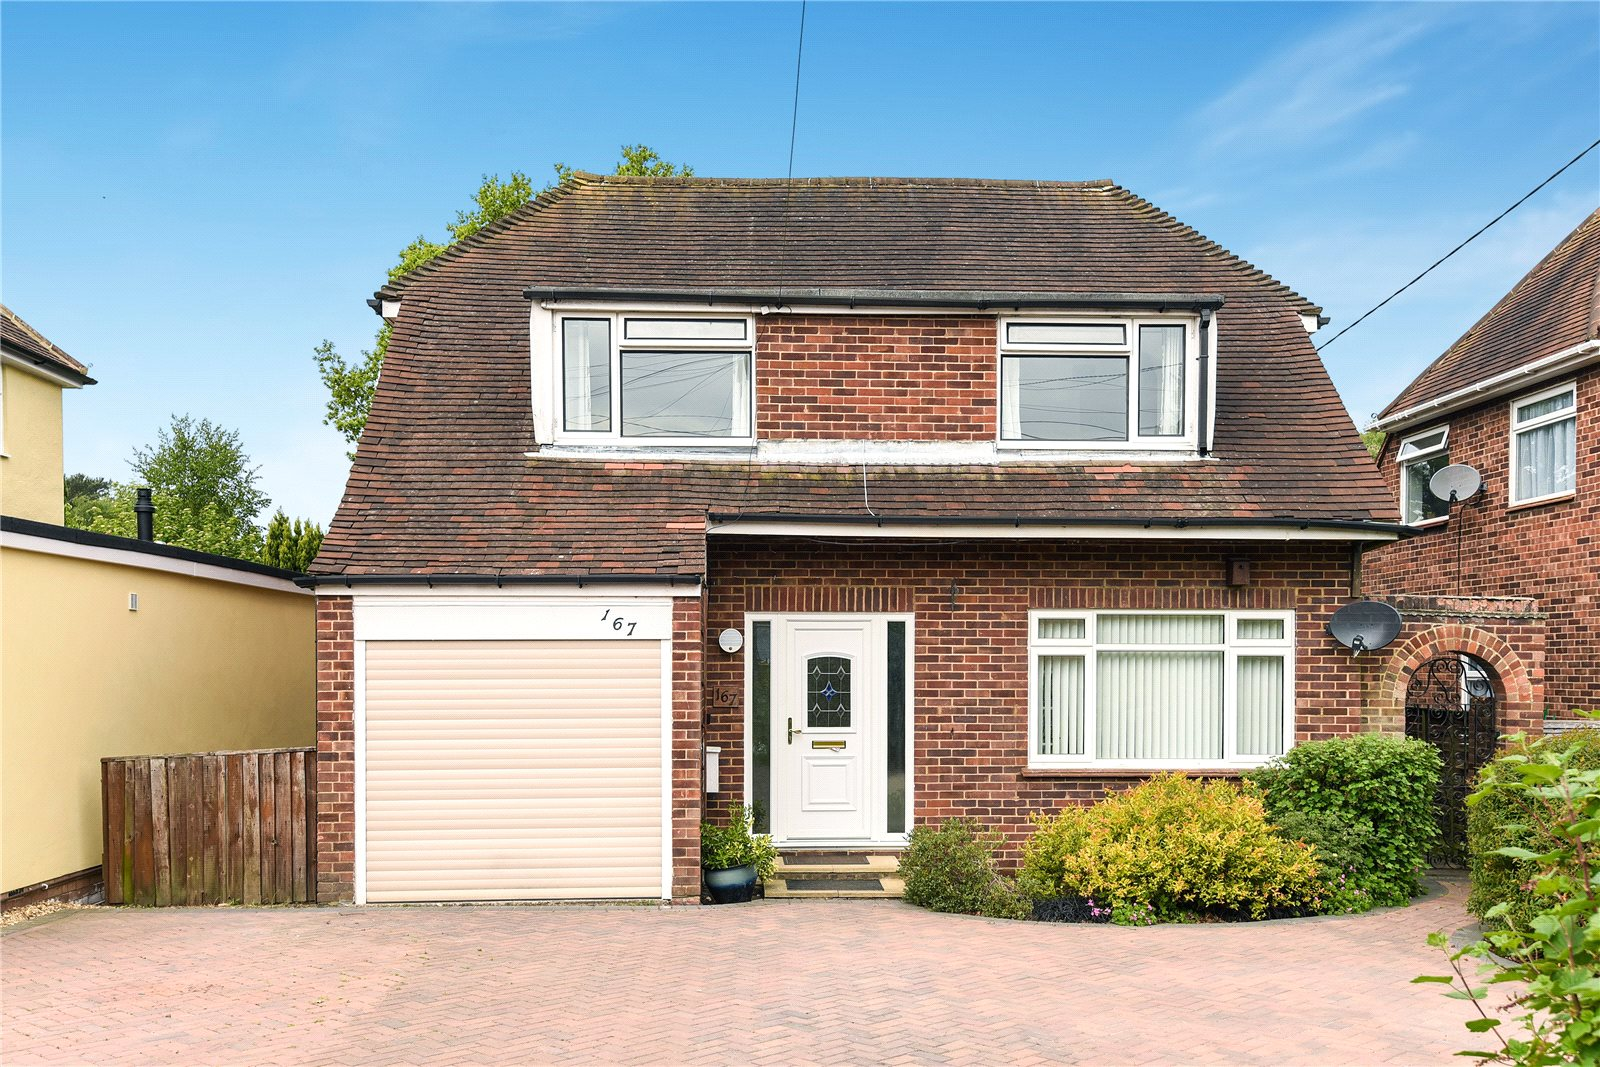 3 Bedrooms Detached House for sale in Branksome Hill Road, College Town, Sandhurst, Berkshire, GU47